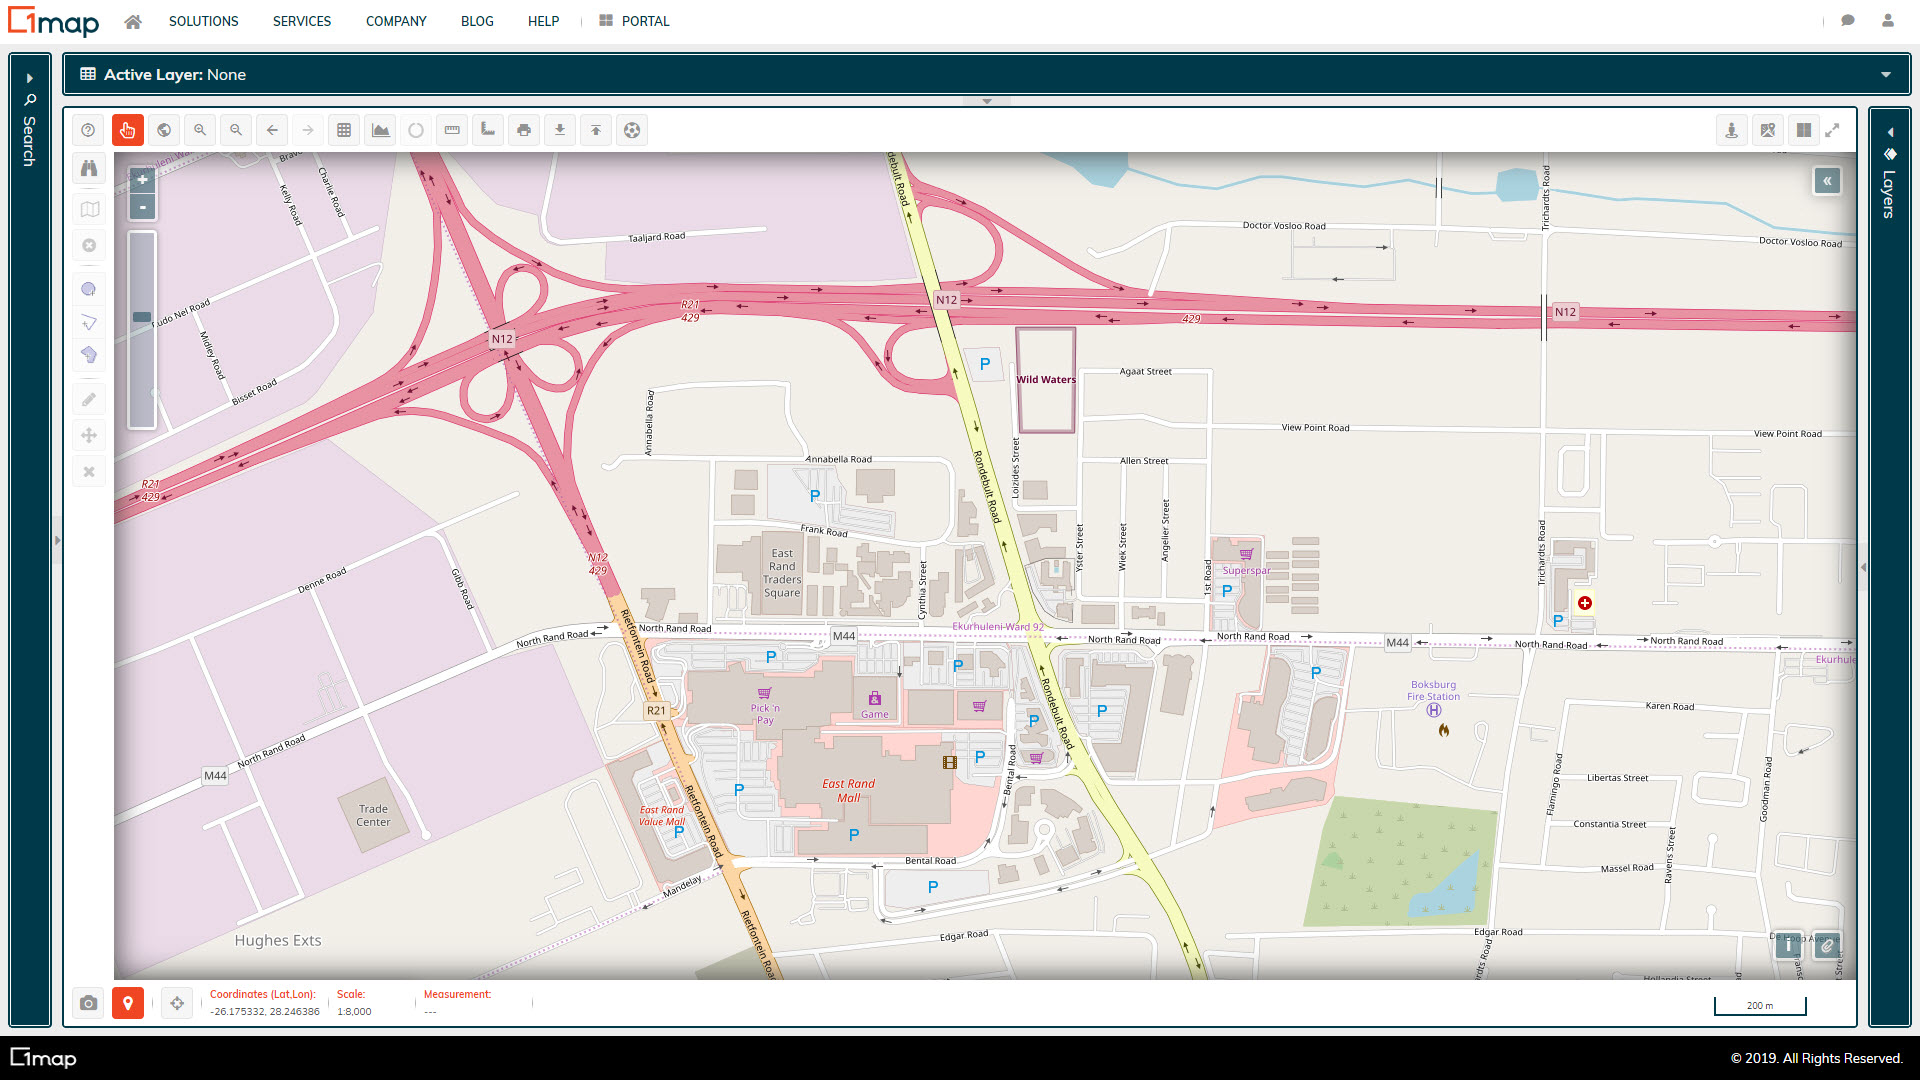 A screenshot of the Open Street Maps (OSM) layer.